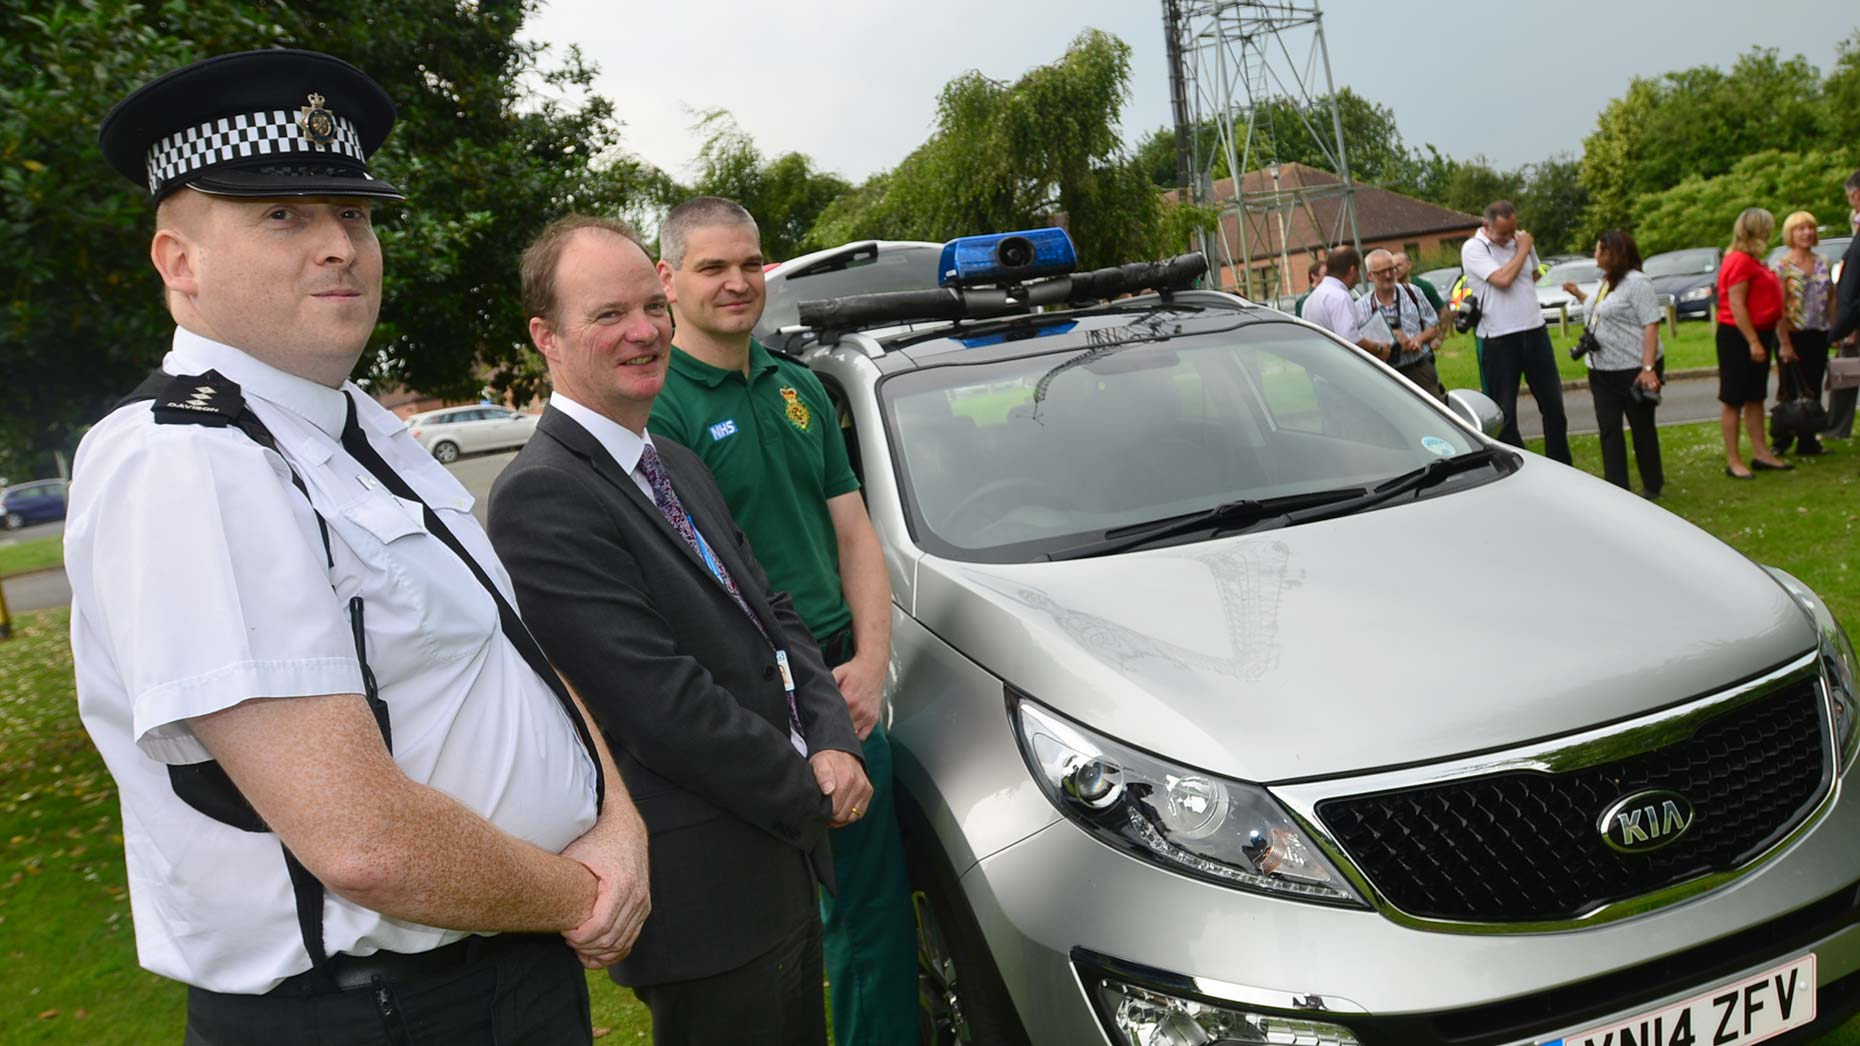 Lincolnshire Police Chief Inspector Chris Davison, Dr John Brewin, Interim Chief Executive at Lincolnshire Partnership NHS Foundation Trust and EMAS Locality Quality Manager Paul Benton with the new street triage vehicle. Photo: Steve Smailes/The Lincolnite